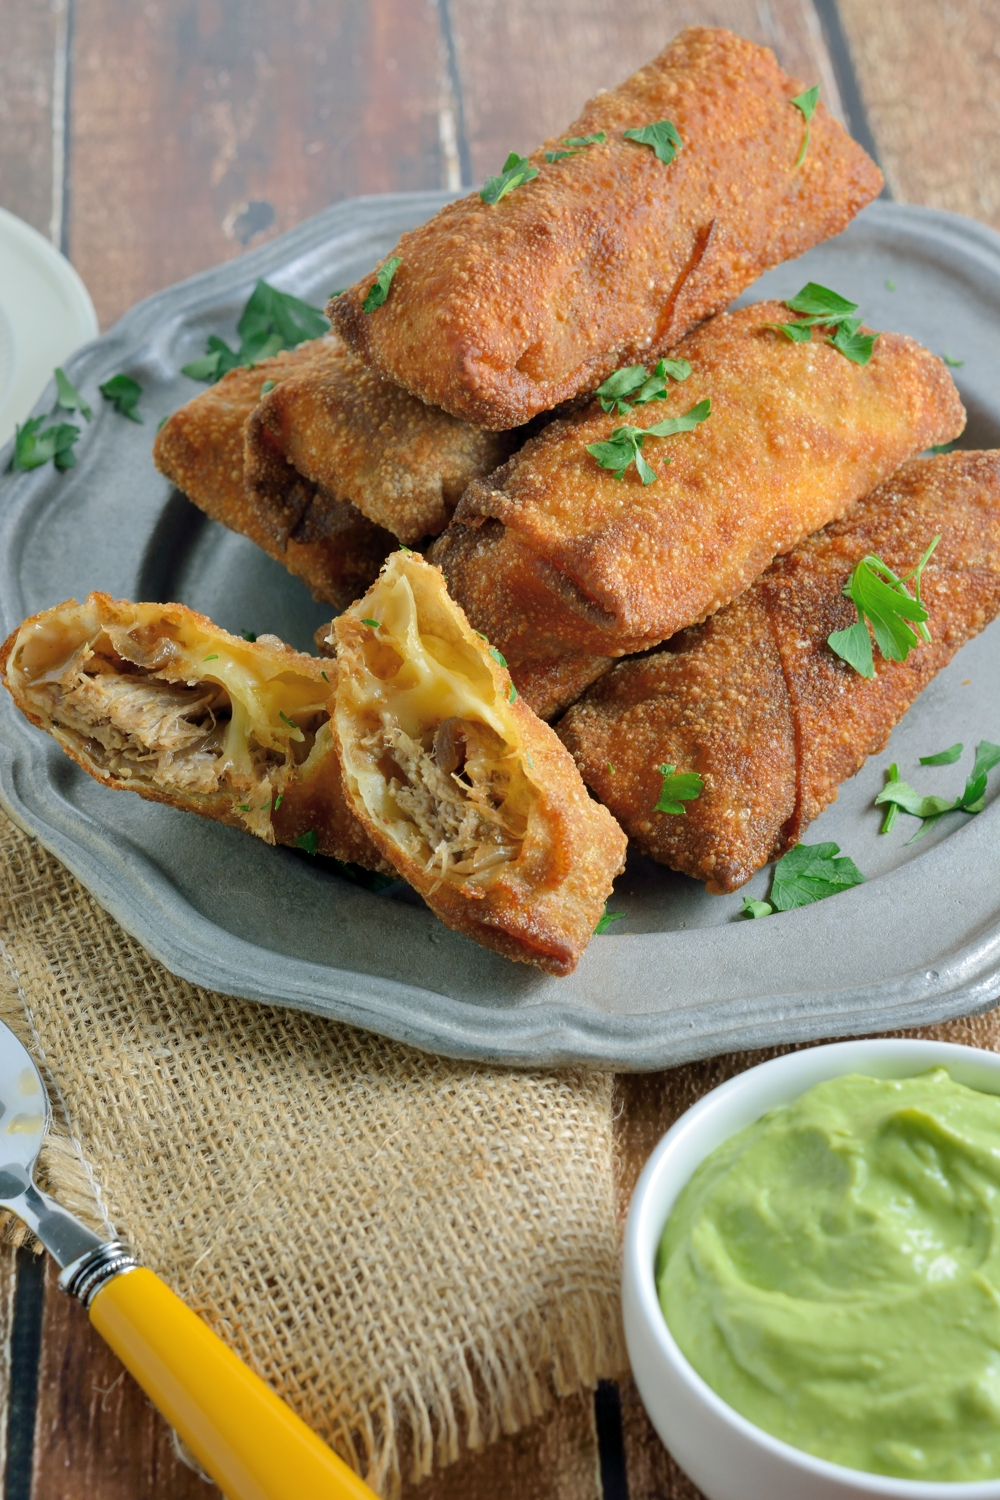 Super Bowl Appetizer Recipe: Pulled Pork and Smoked Gouda Egg Rolls